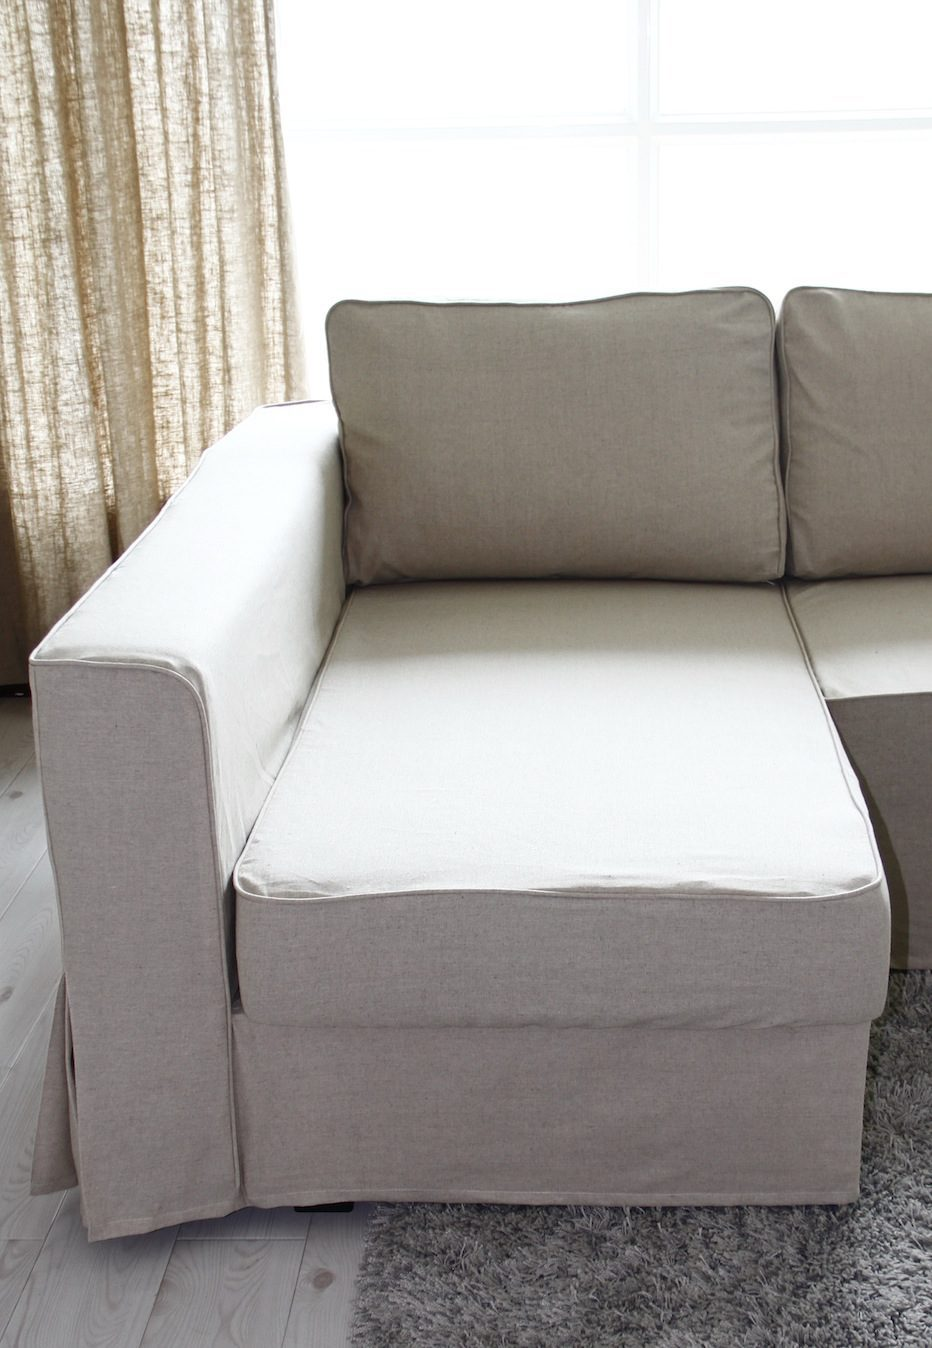 Chaise Sofa Left Side